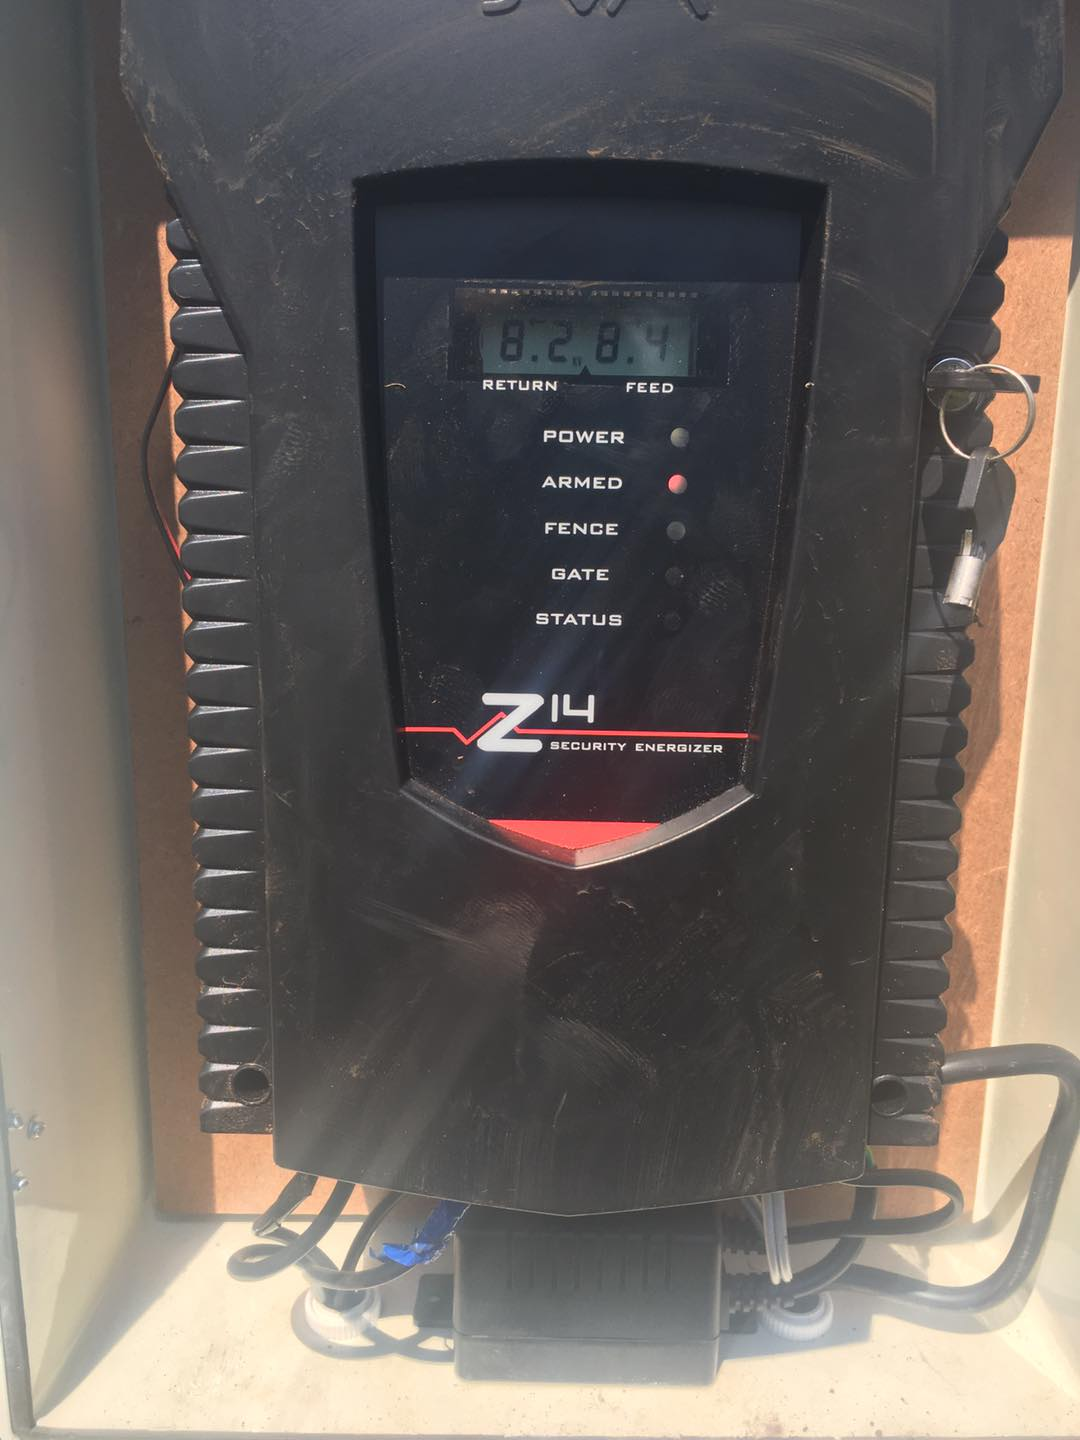 Volt Electric and Security